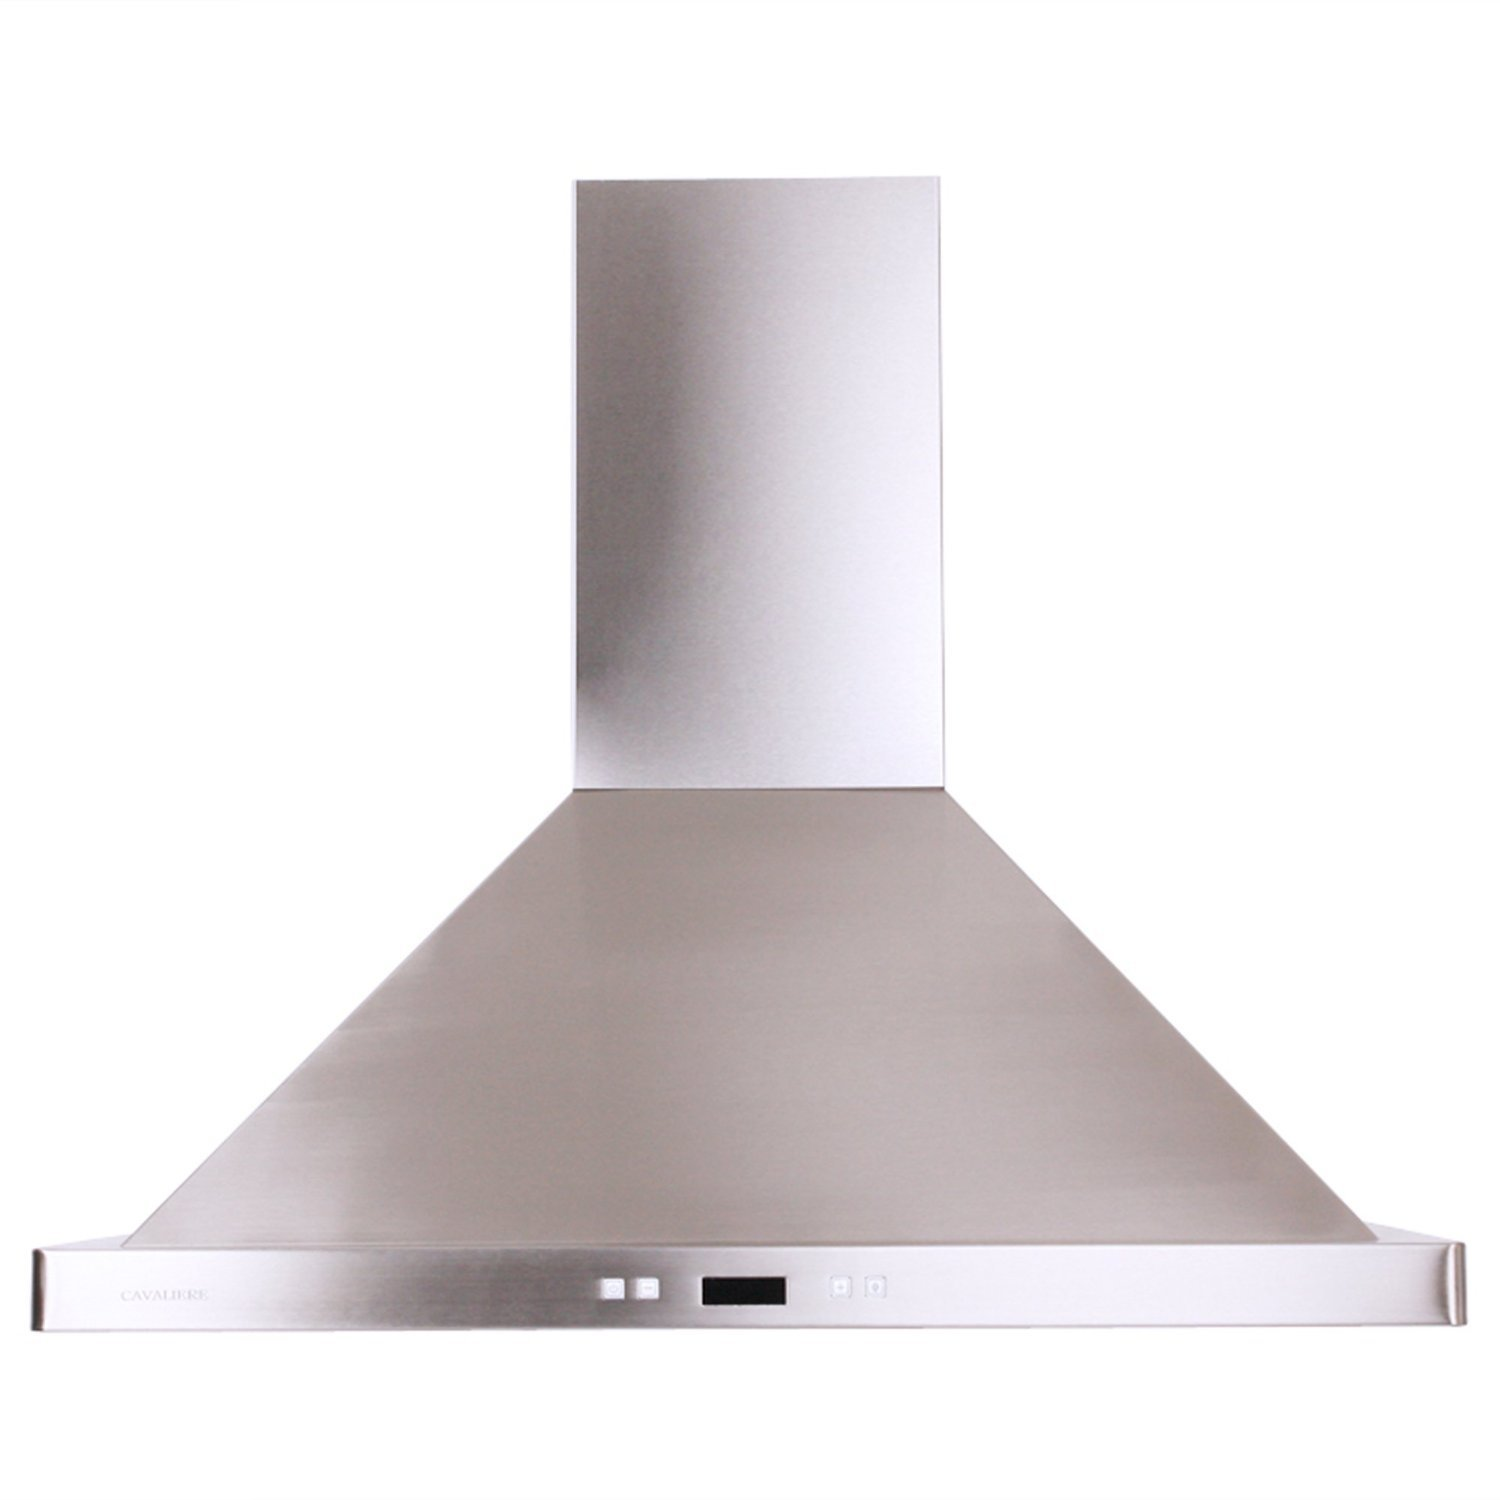 Cavaliere SV218B2-30 Wall Mount Range Hood with 900 CFM in Stainless Steel by CAVALIERE